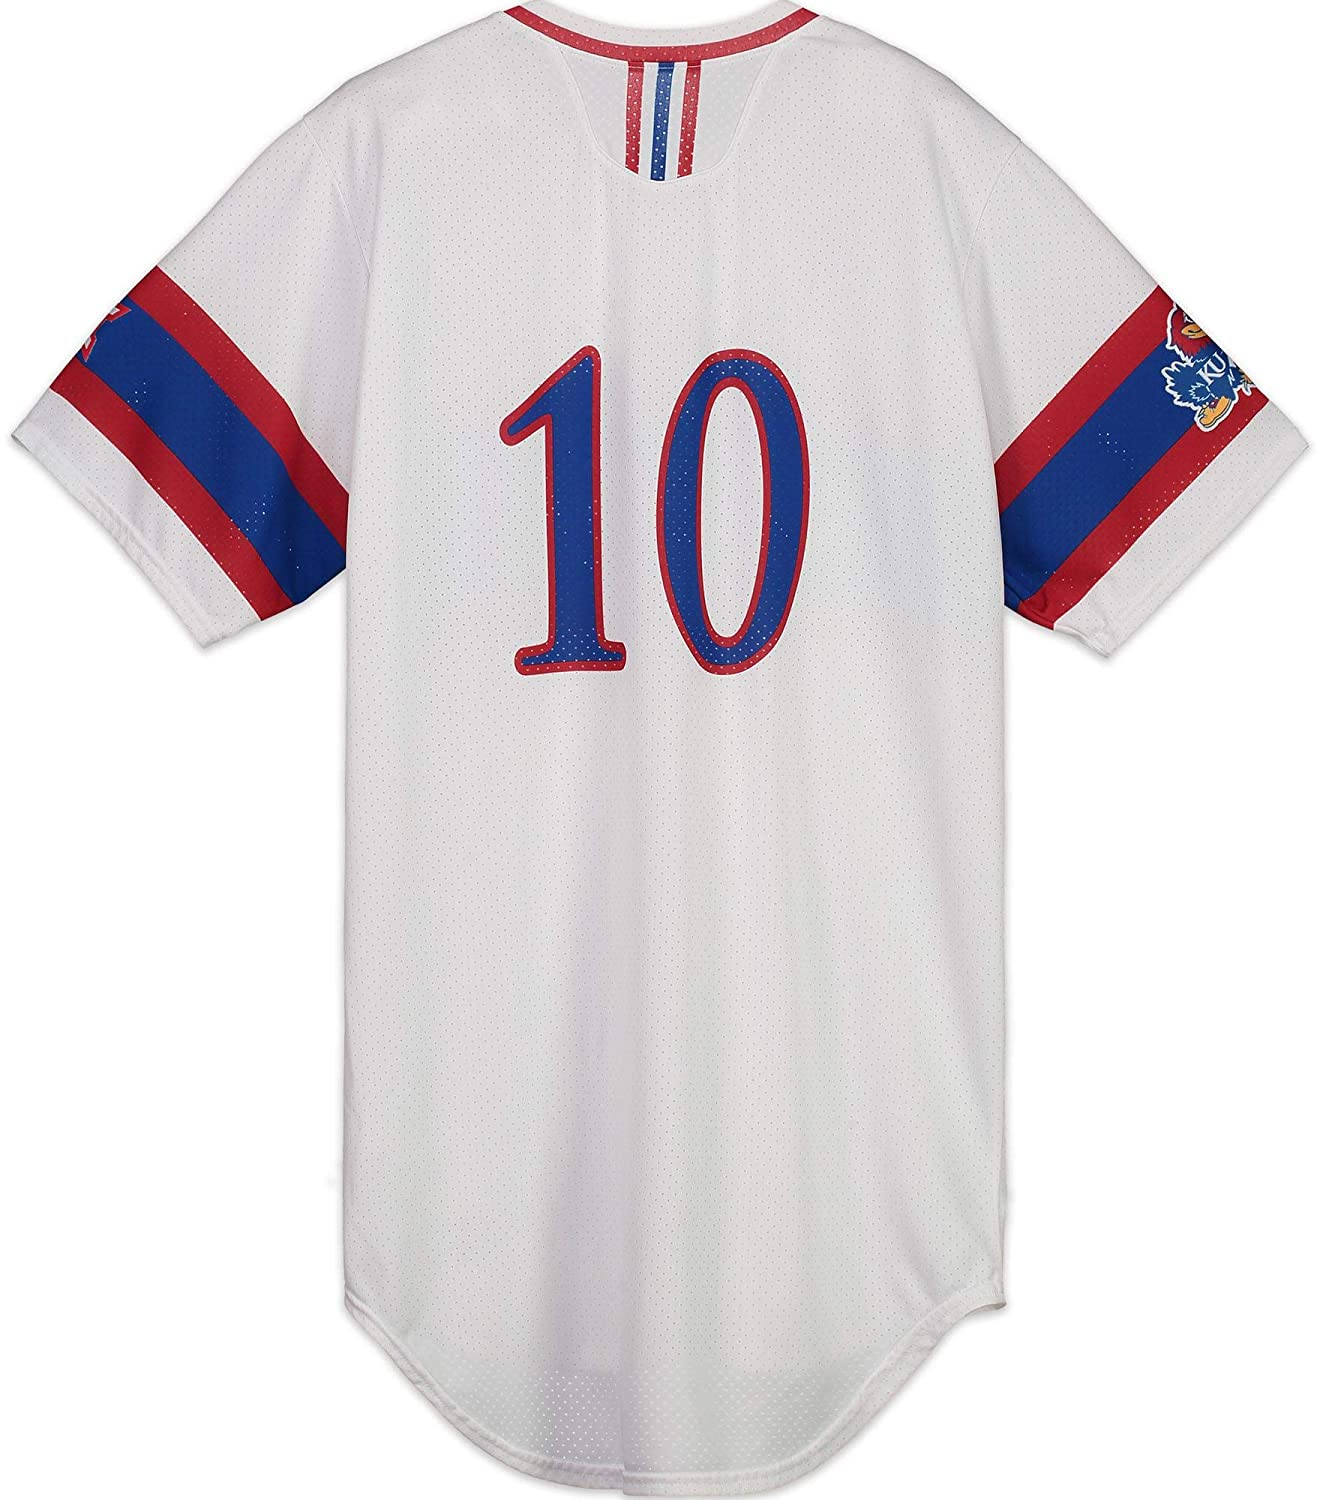 meet a529c 90006 Kansas Jayhawks Team-Issued #10 White, Blue, and Red Jersey ...